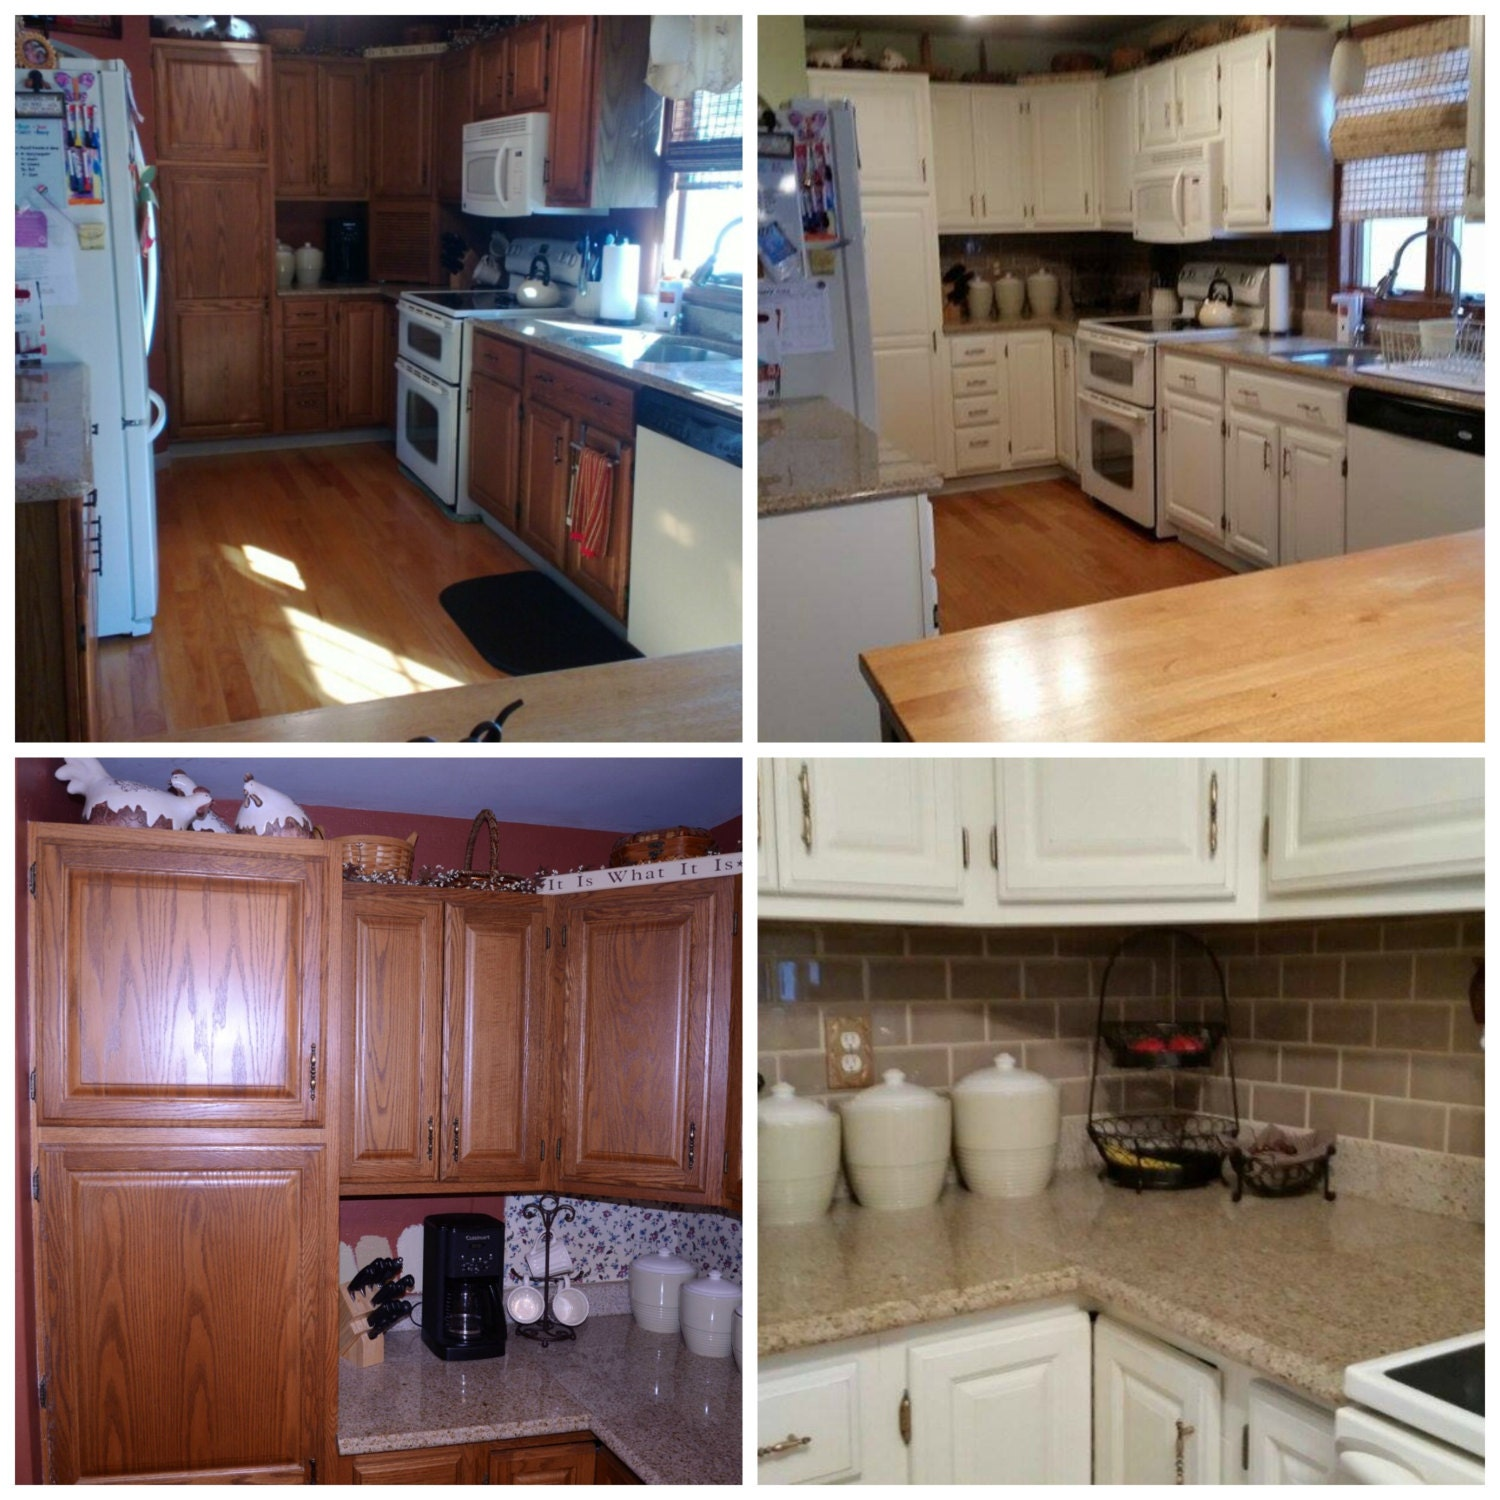 How To Refinish Old Kitchen Cabinets: Refinishing Kitchen Cabinets